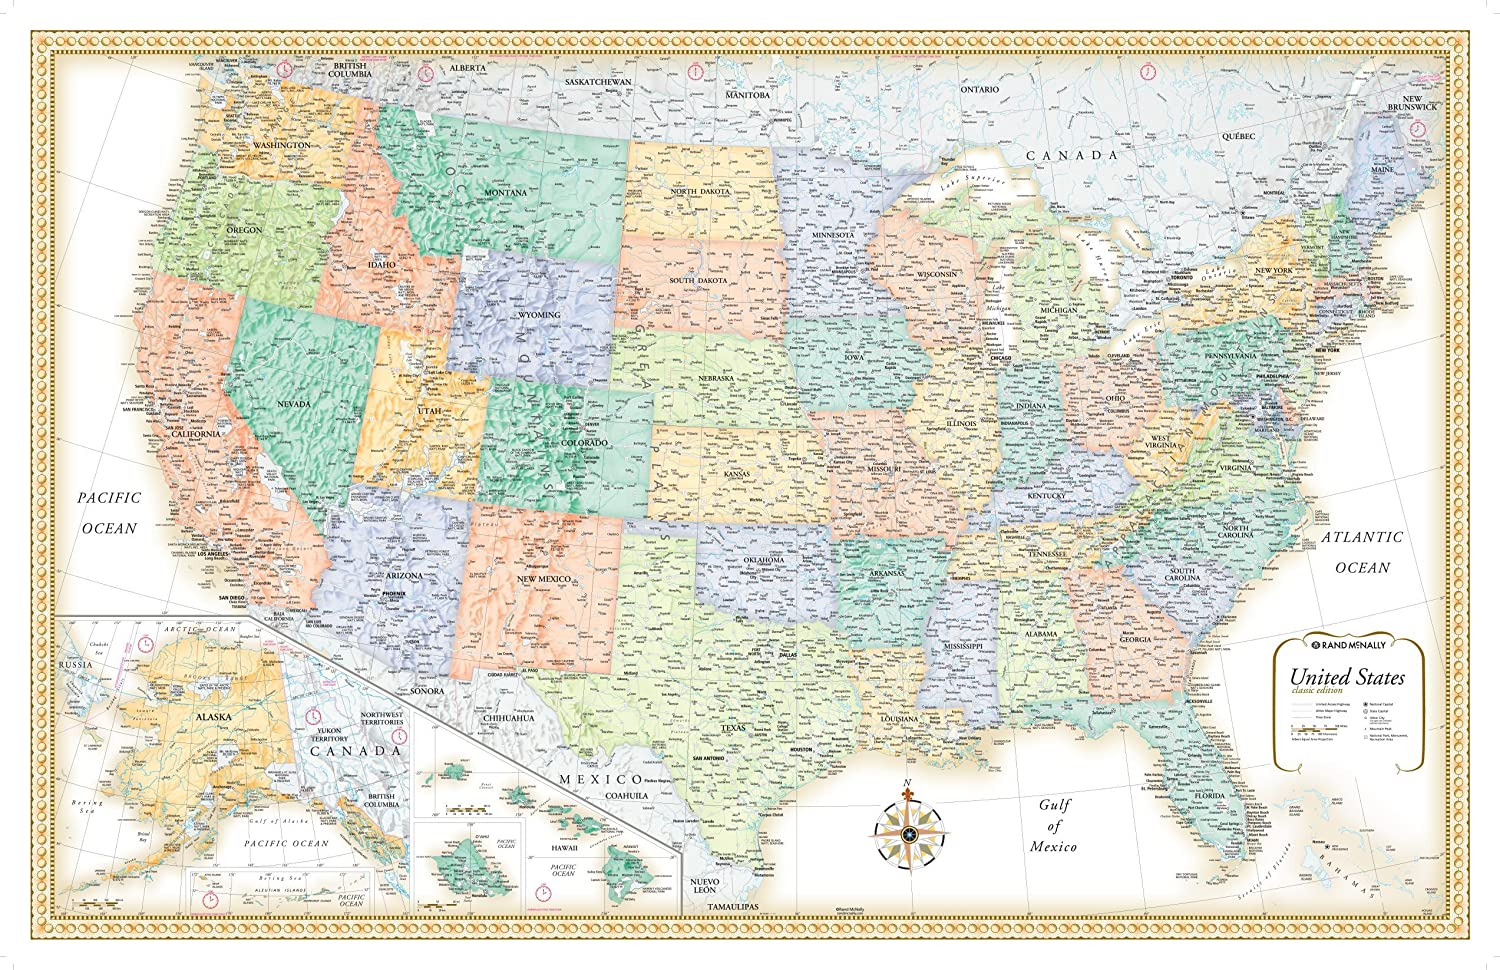 Amazoncom X Rand McNally Classic United States USA Wall Map - Us maps states